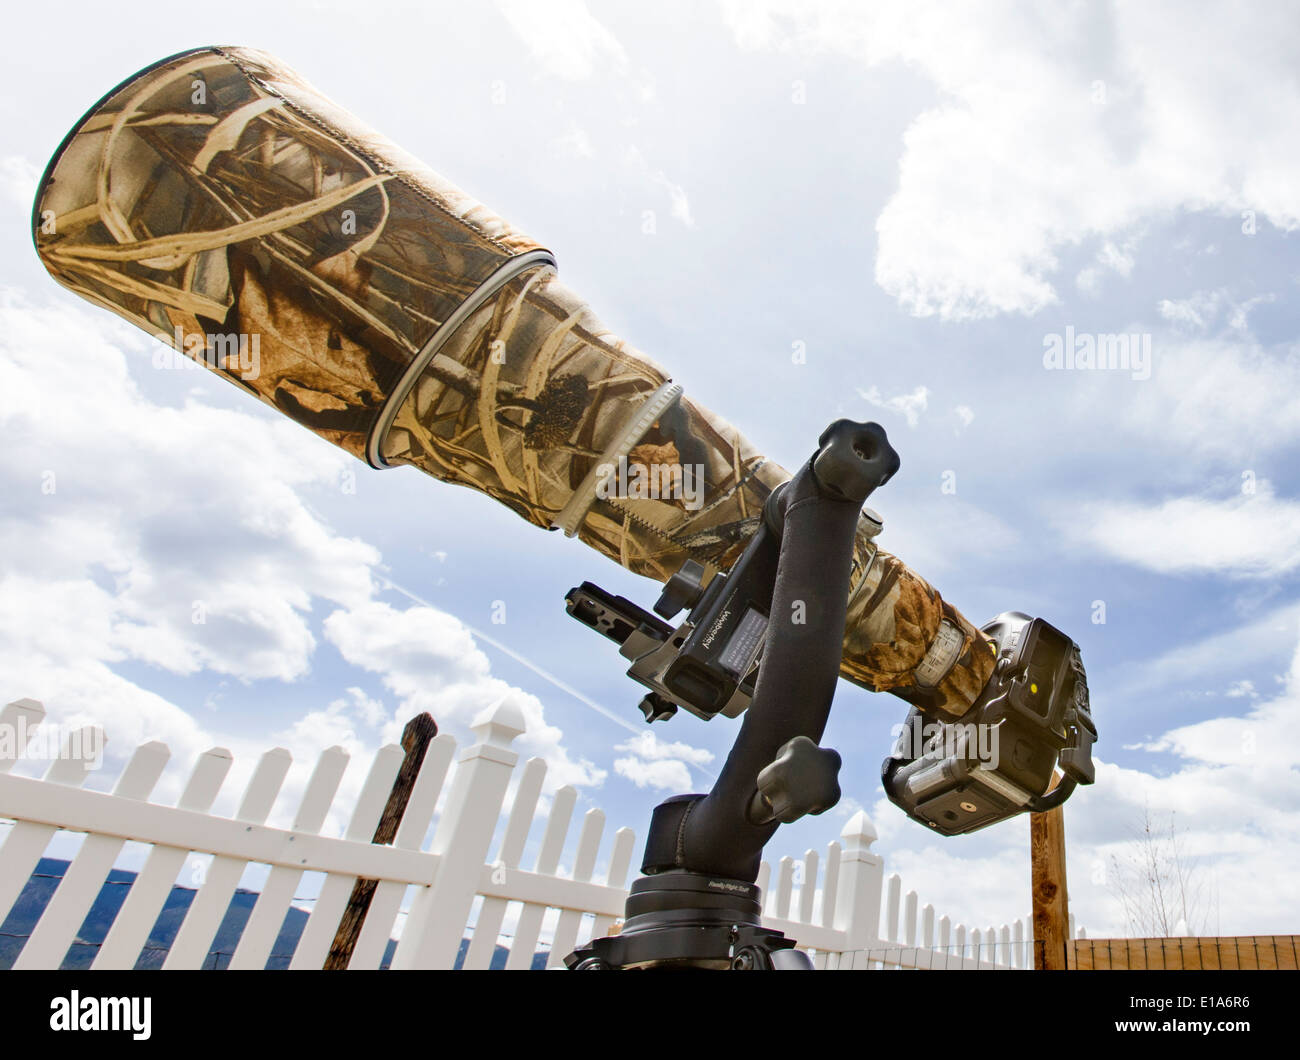 Large telephoto lens w camouflage cover, professional digital camera & tripod - Stock Image